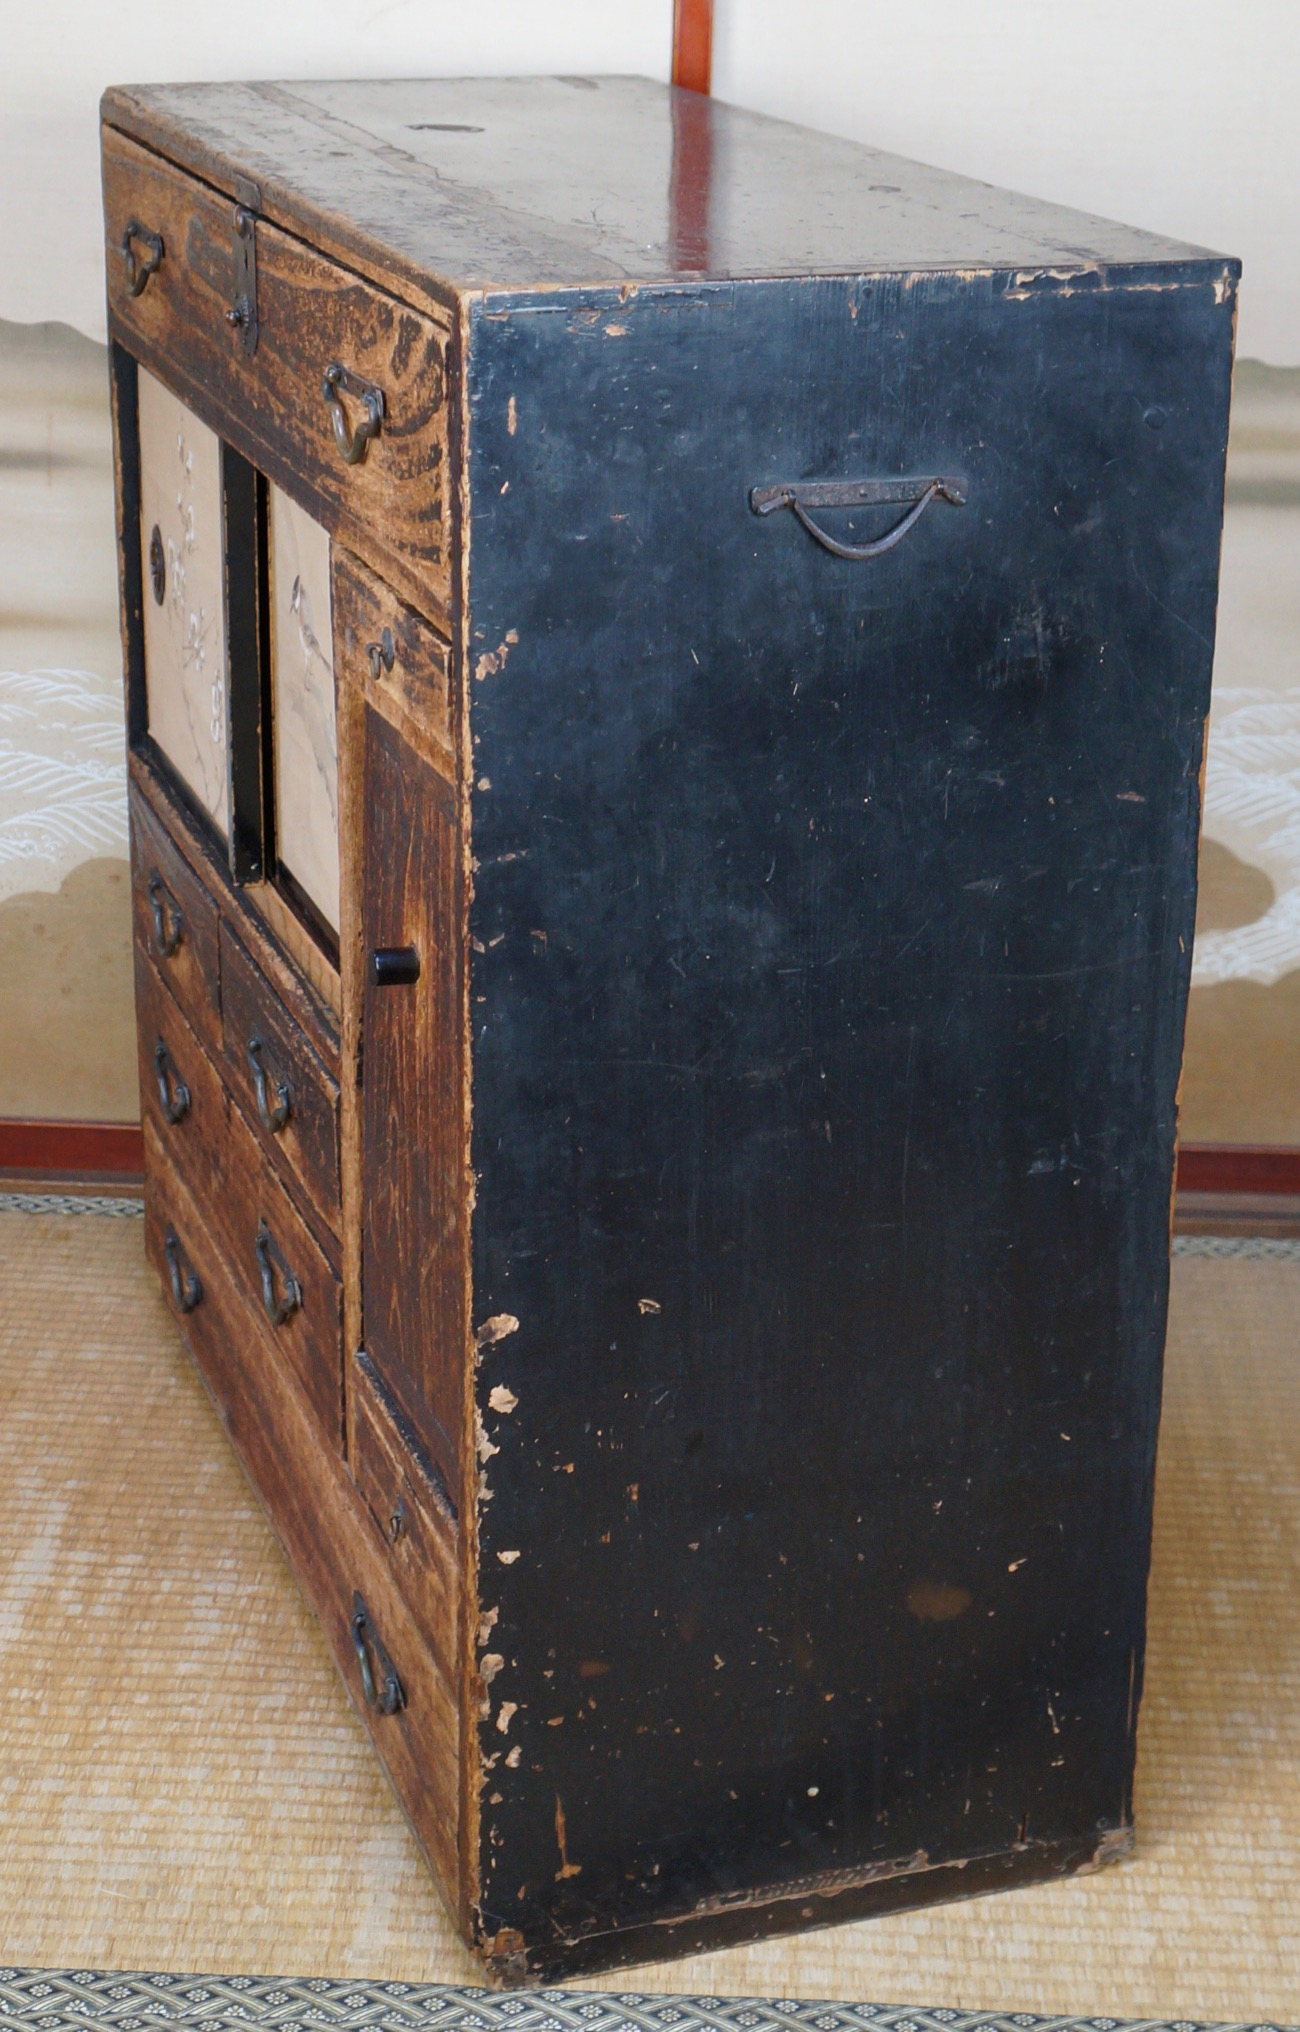 Materials: wood, bronze - Antique Tansu Japanese House Furniture Dated 1871 Japan Wood